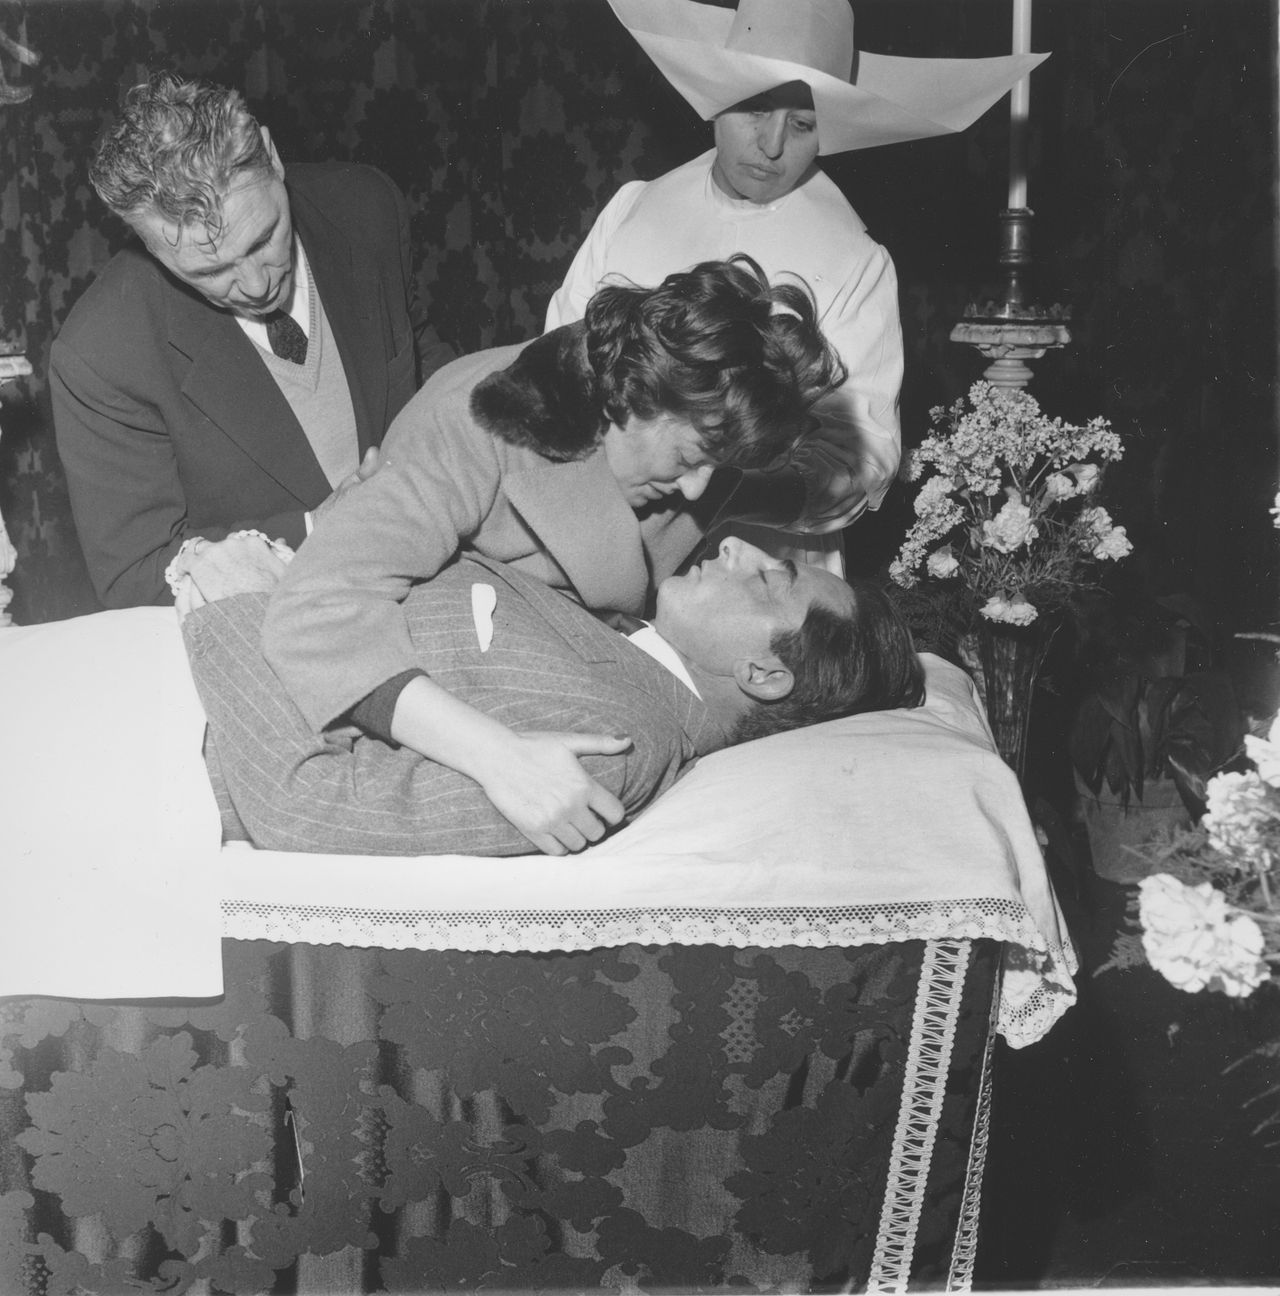 """Giulia Occhini bends to kiss goodbye her companion, Italian cycling champion and two-time Tour de France winner Faust Coppi, who died from a sudden attack of bronchial pneumonia at a hospital in Tortona, Italy, January 2, 1960. Coppi's relationship with Occhini, who was nicknamed """"The Lady in White,"""" caused a national scandal in Italy when in 1953 both left their respective spouses to live together. (AP Photo)"""